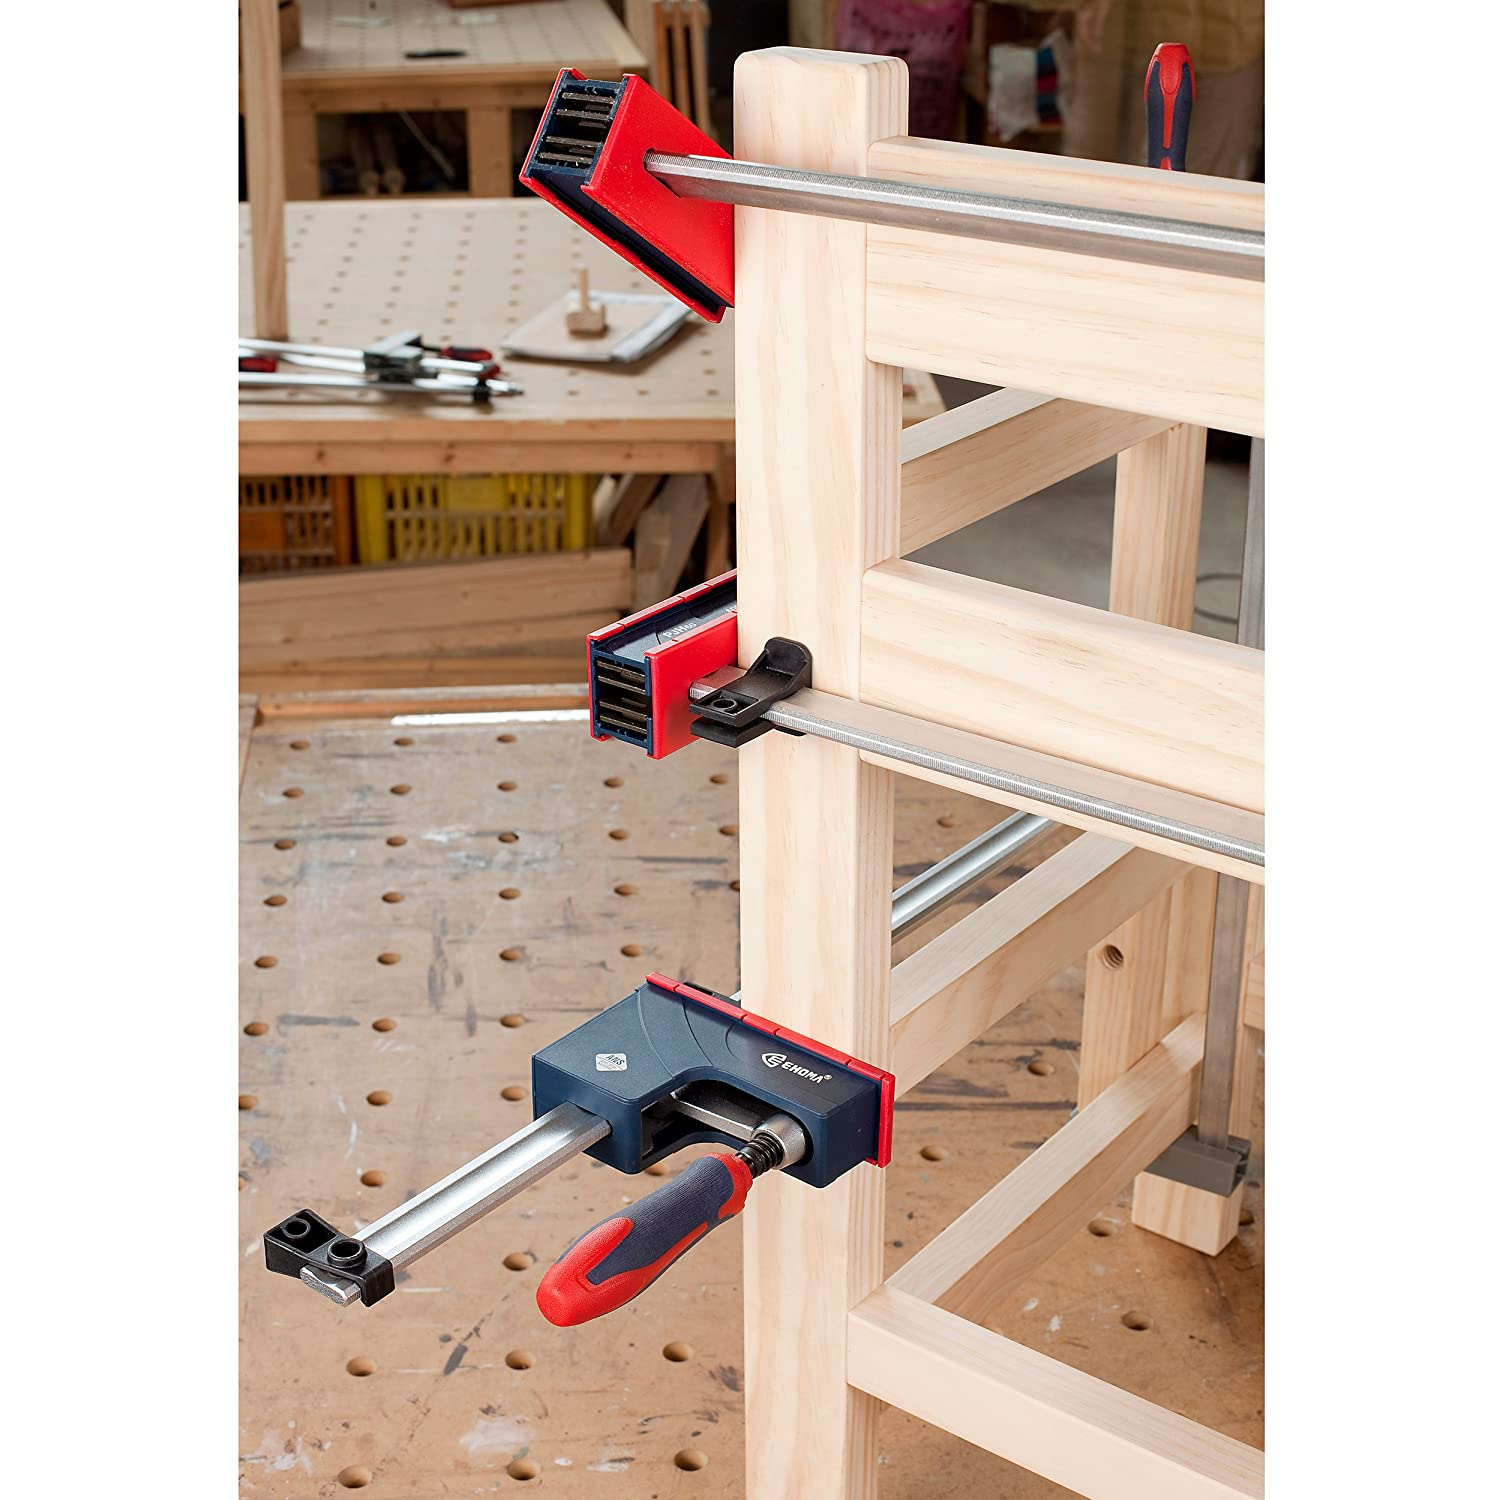 EHOMA Parallel Clamp 40 inch Amazon